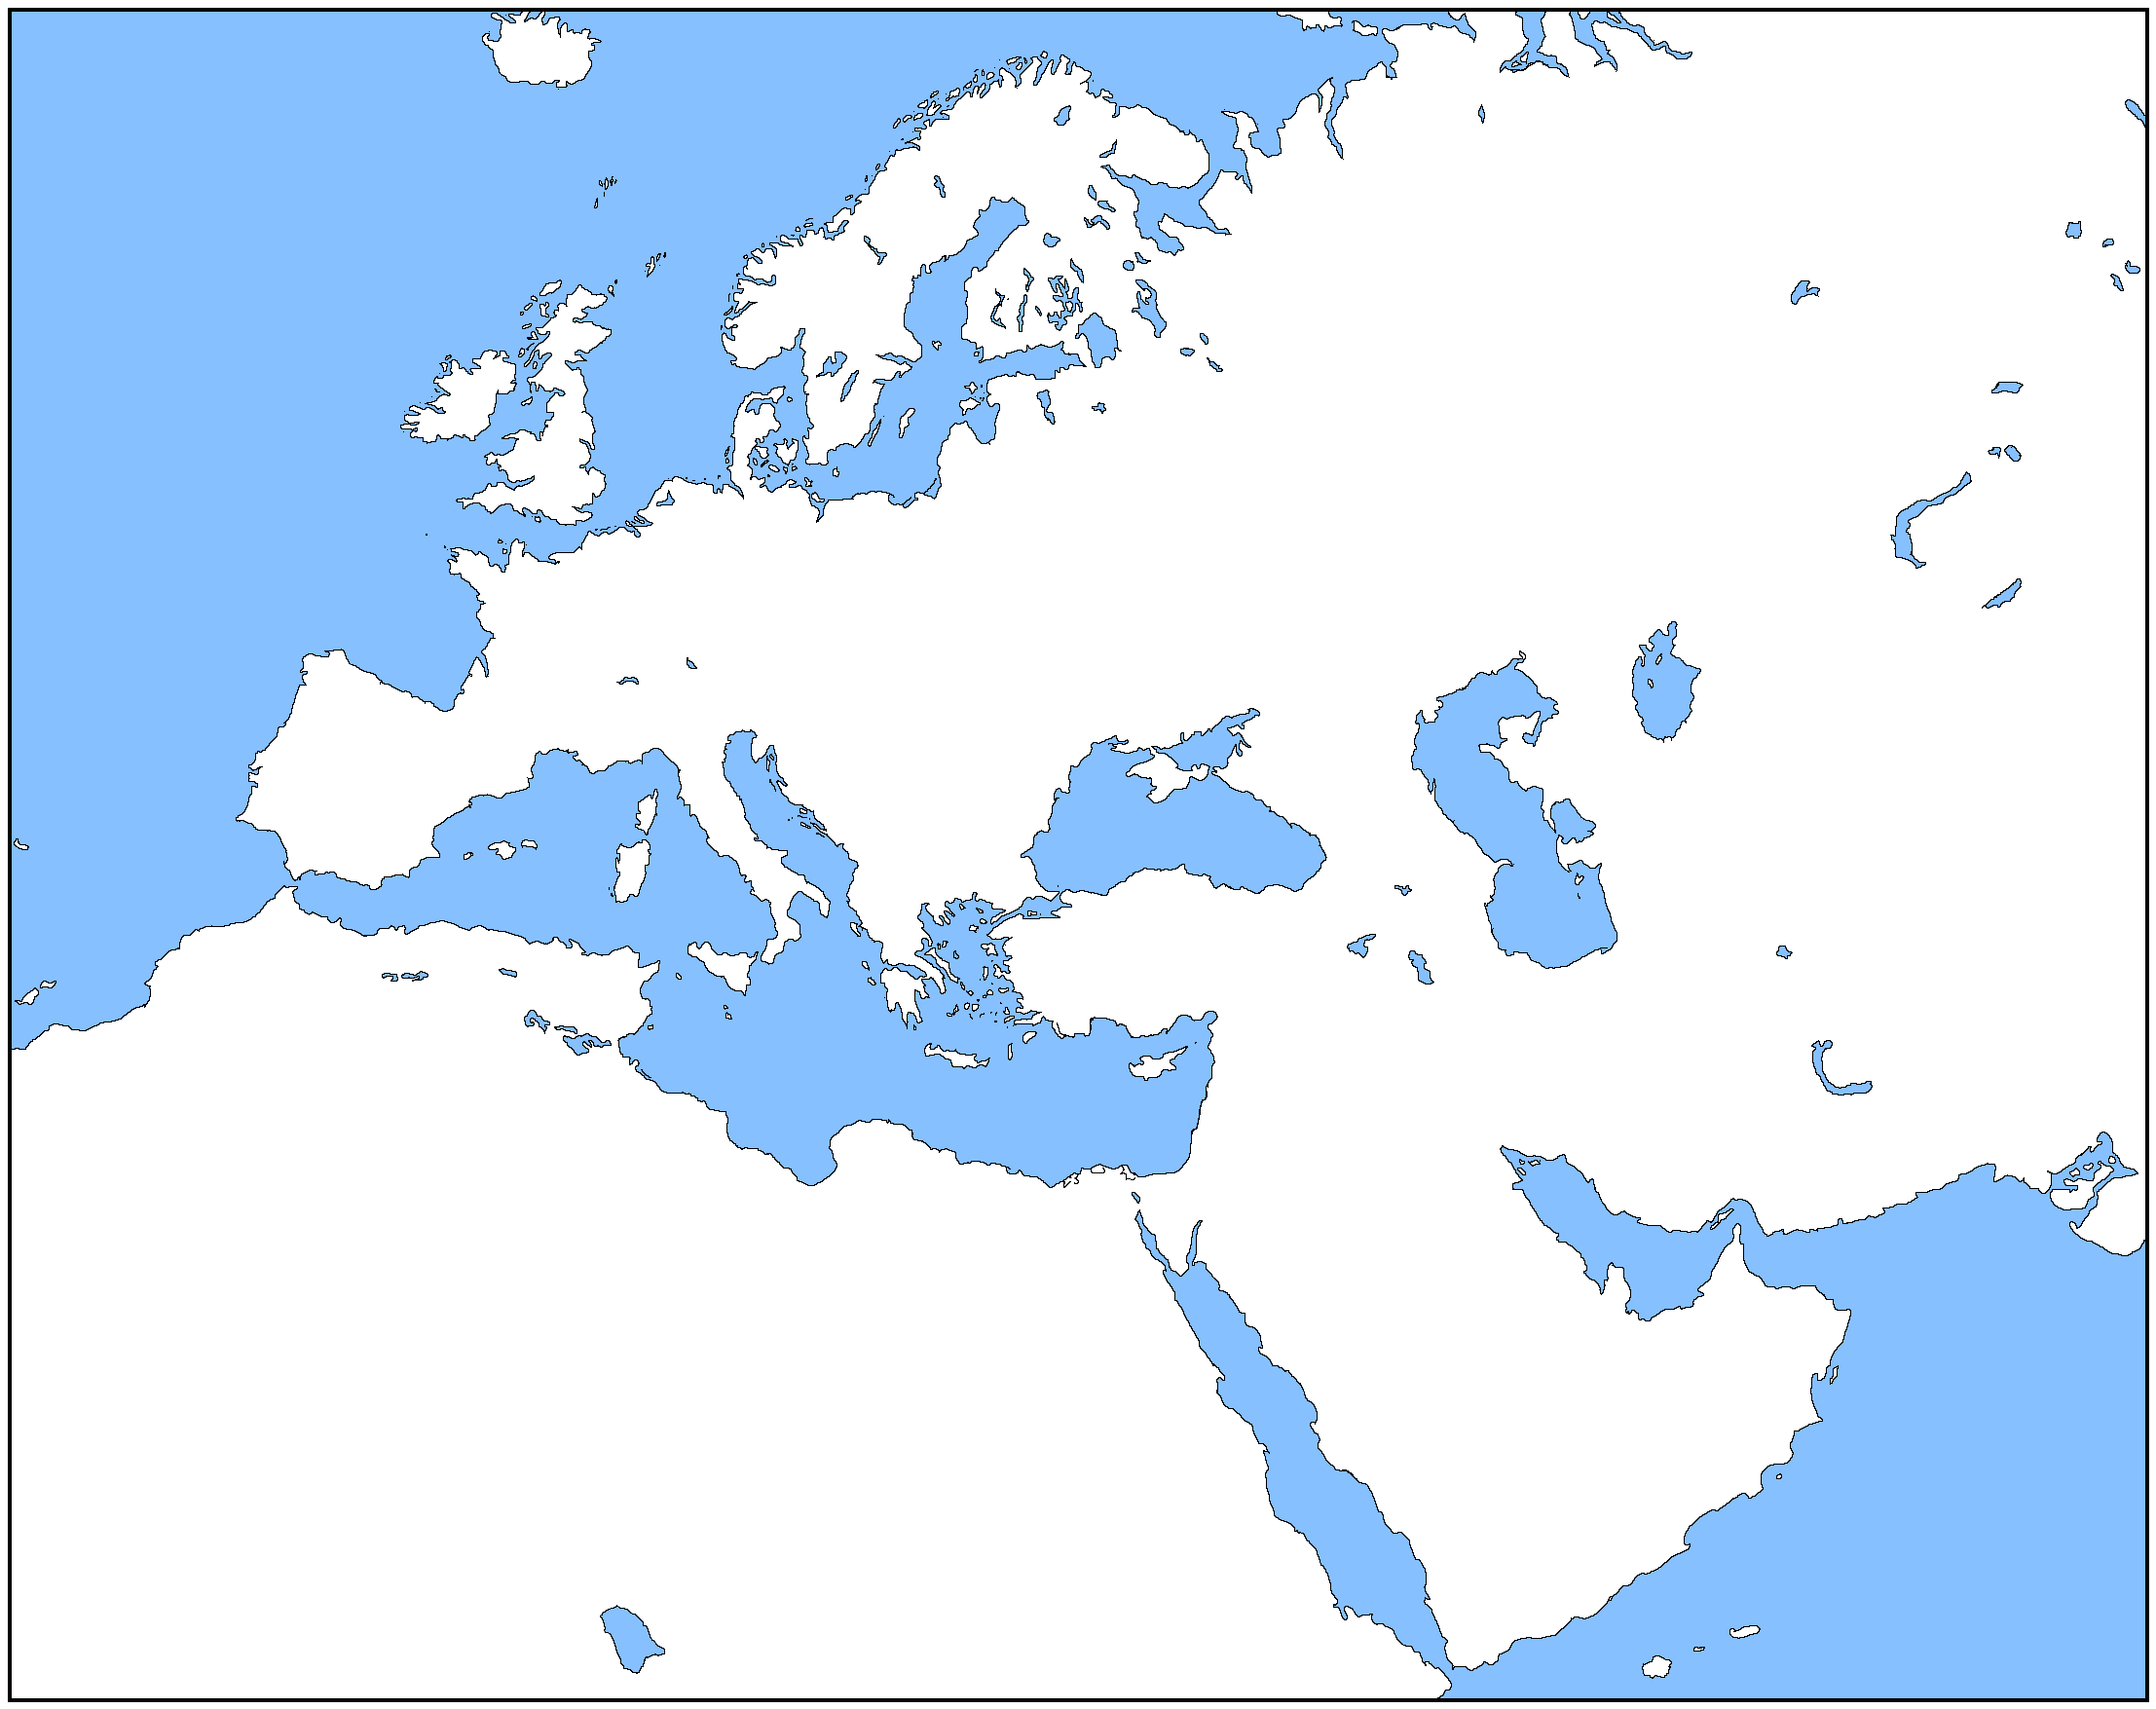 Outline Map Of Europe And North Africa With Blank And | maps ...